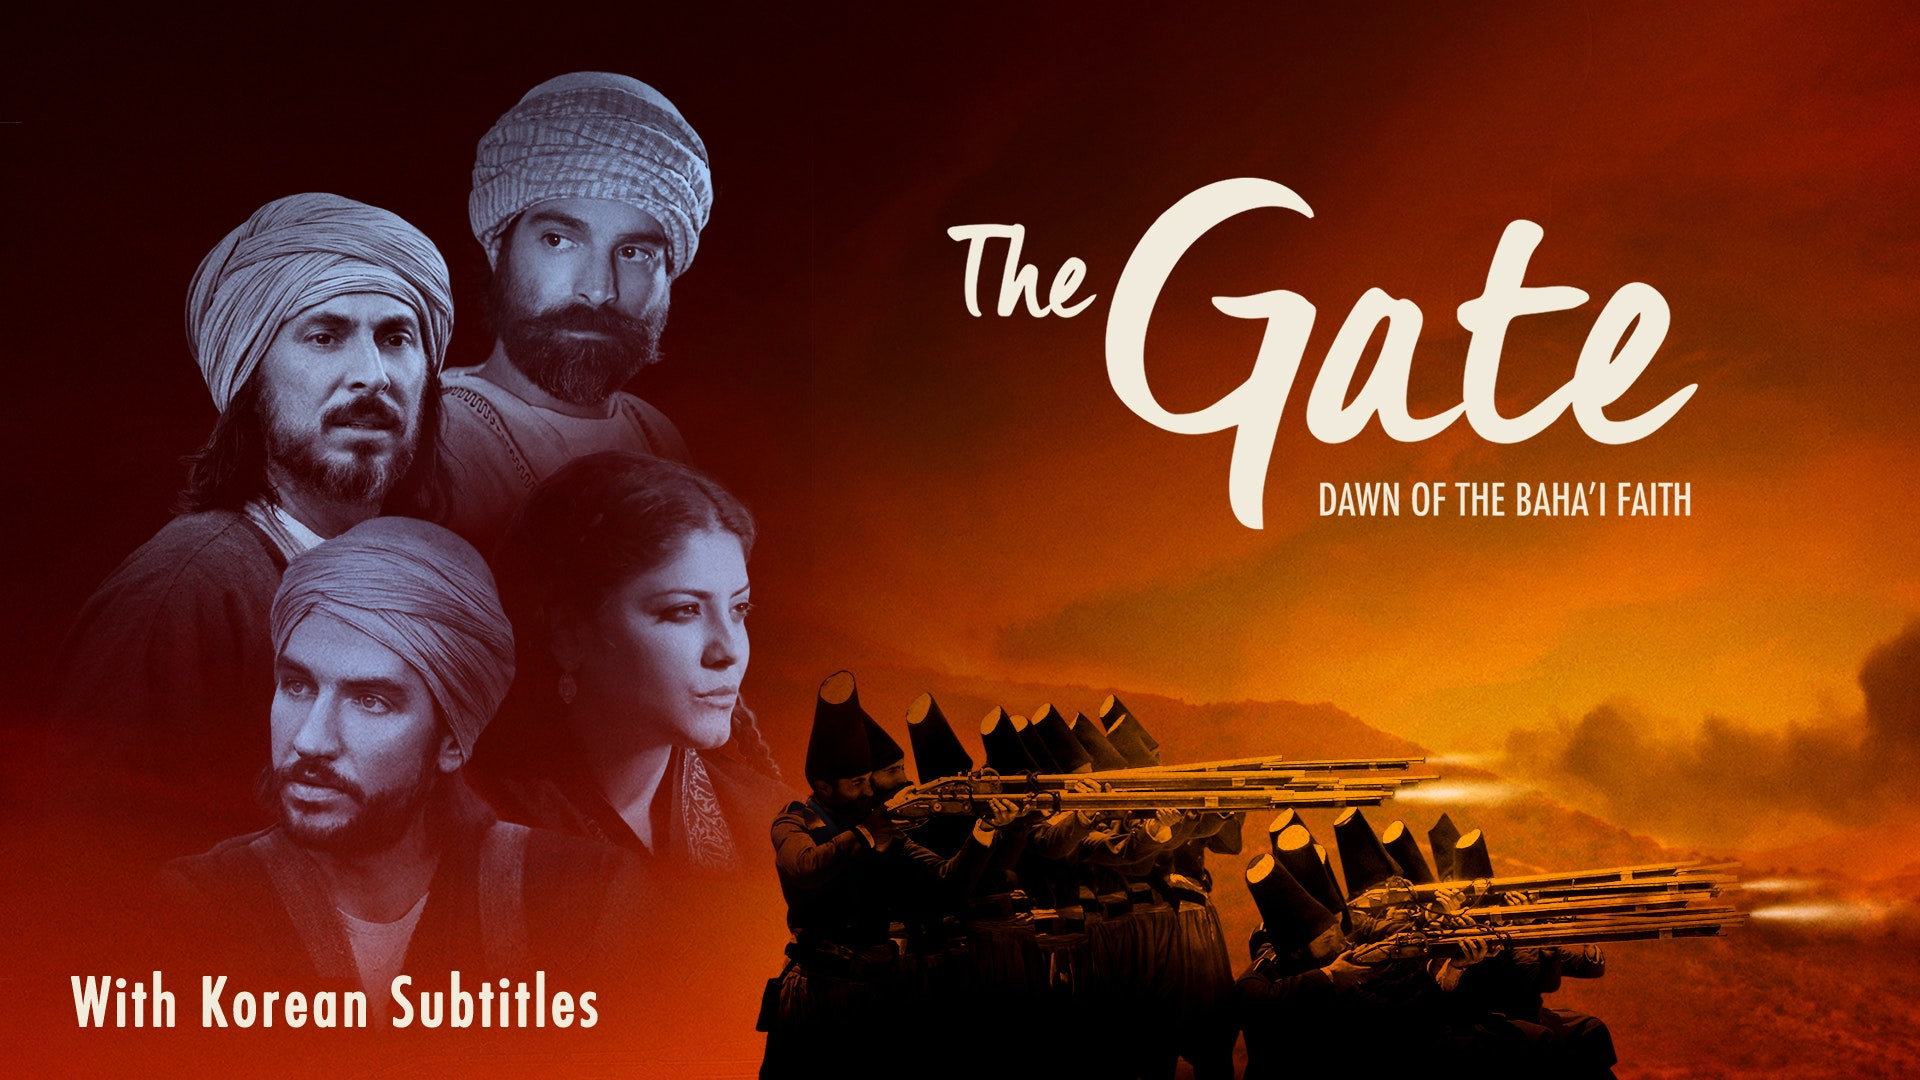 (Ko) Screenings The Gate: Dawn of the Baha'i Faith with Korean Subtitles